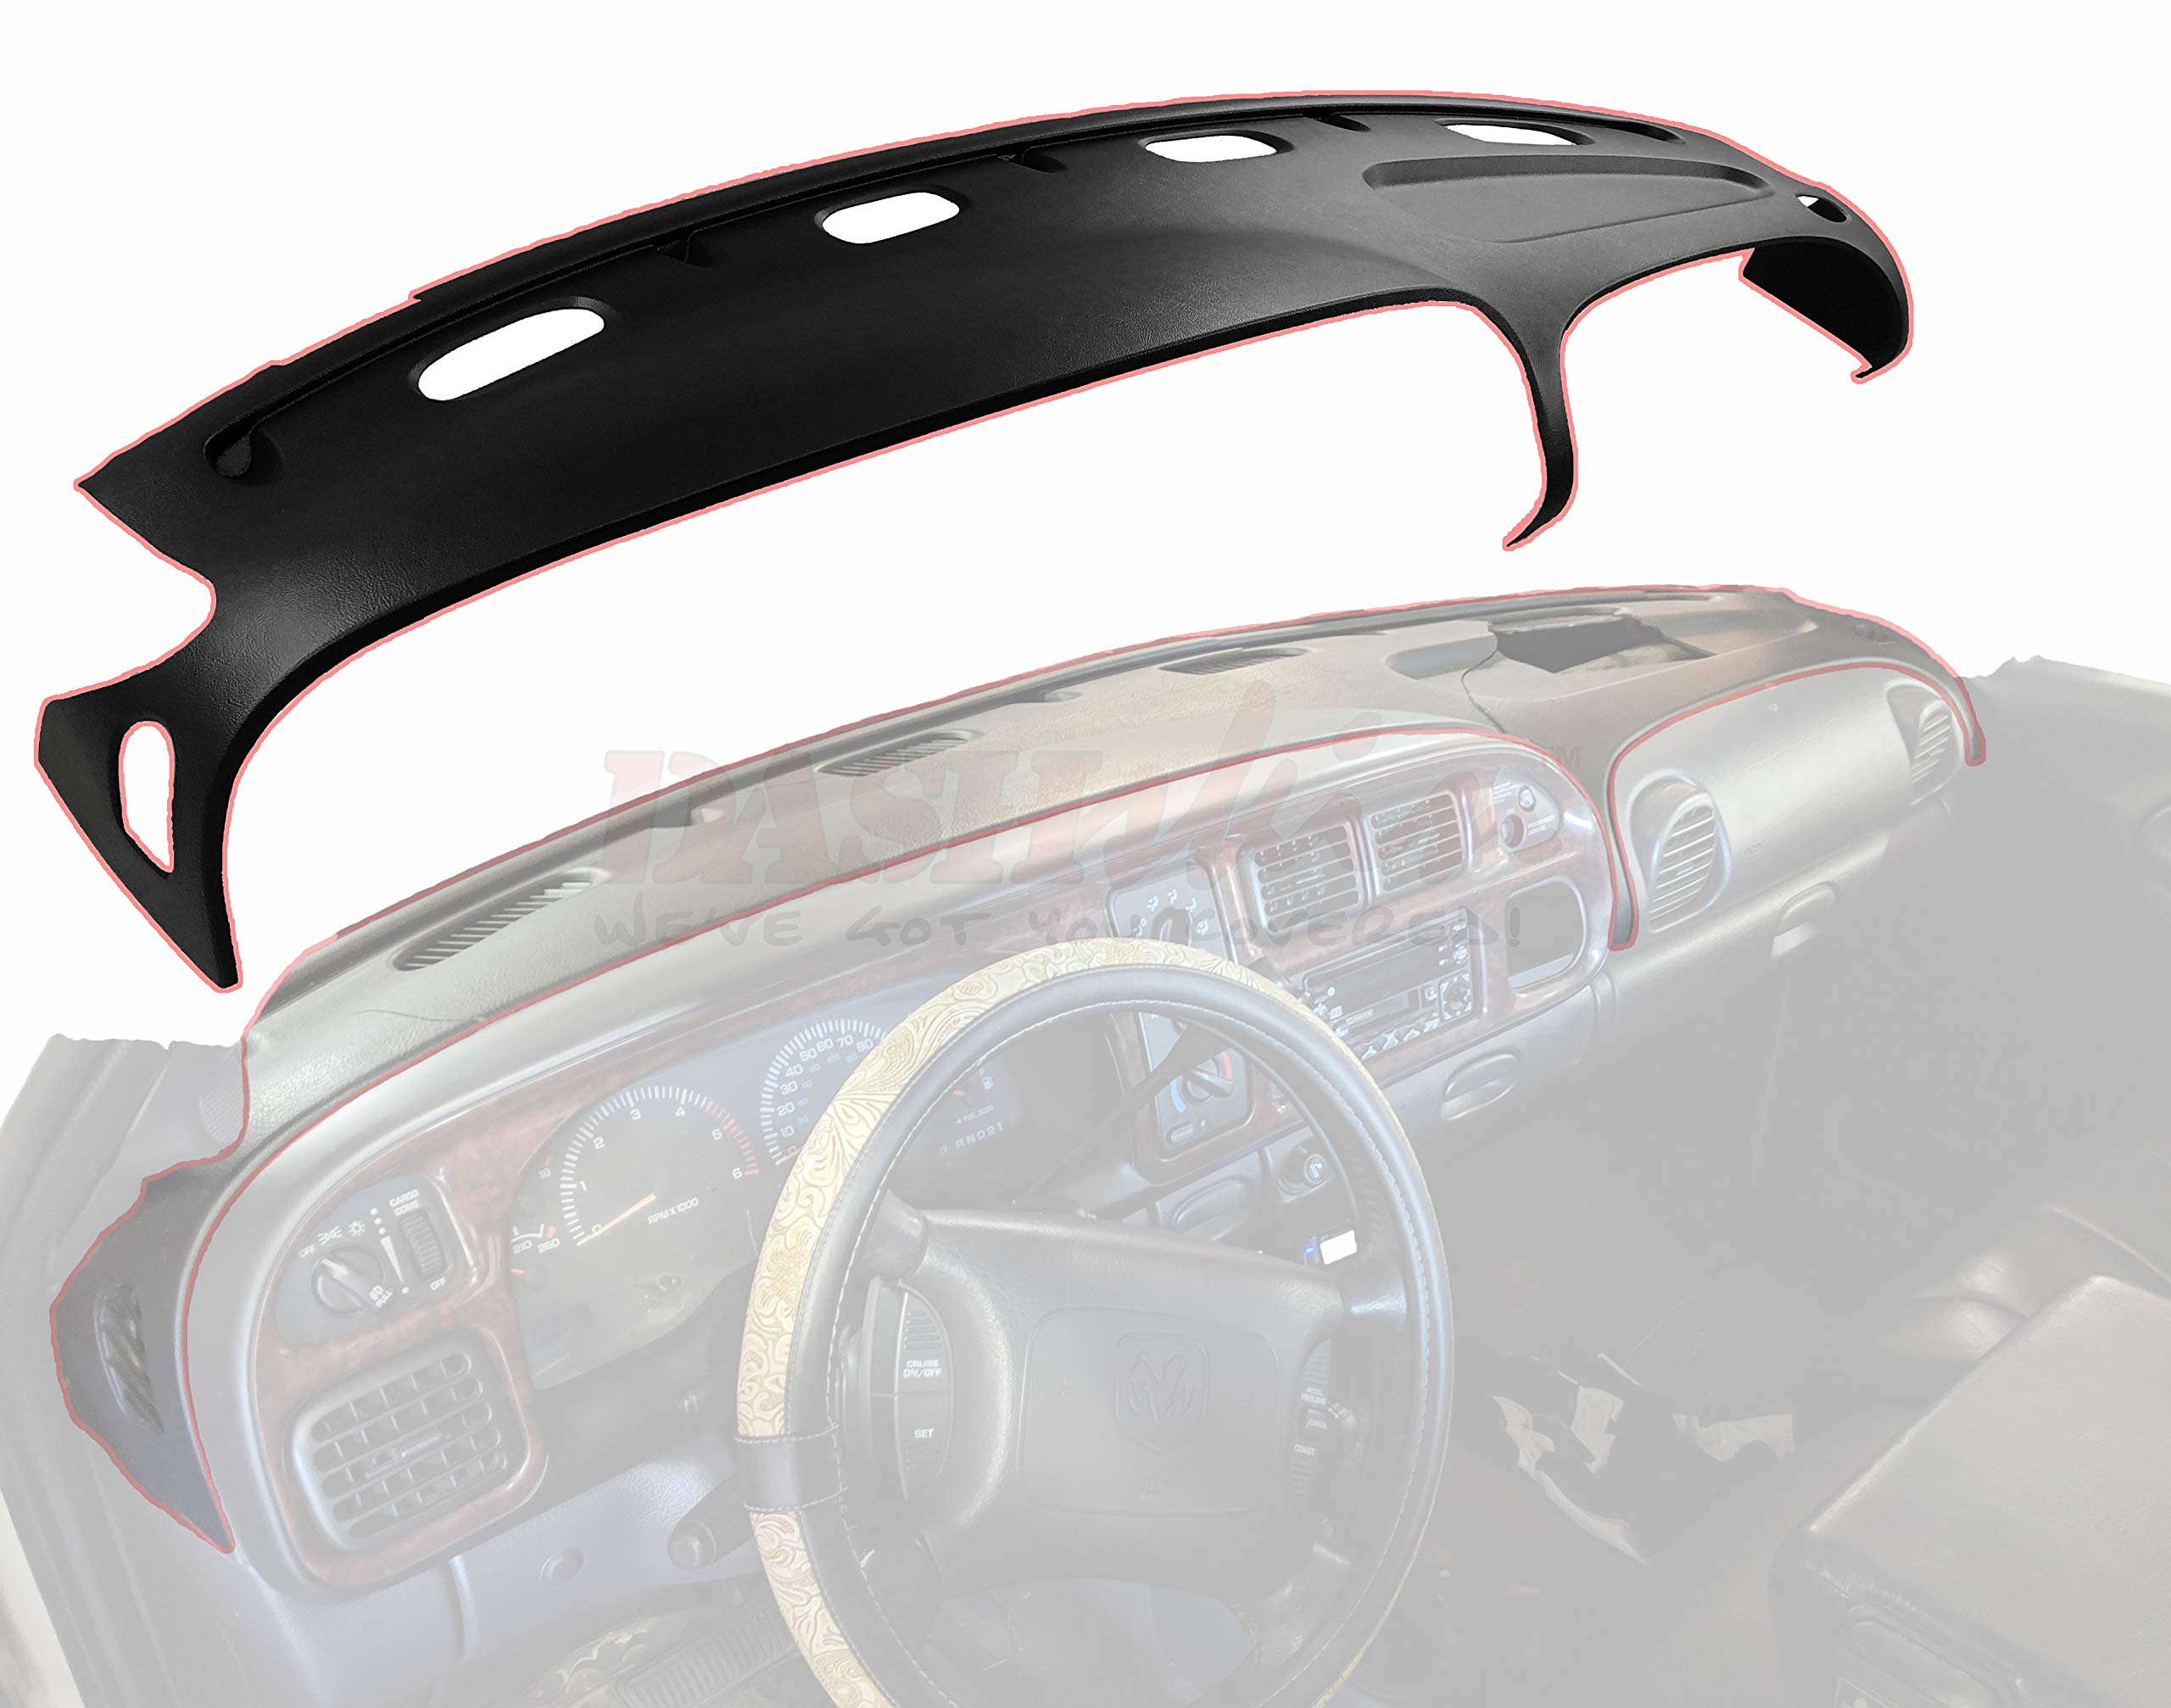 DashSkin Molded Dash Cover Compatible with 98-01 Dodge Ram in Camel by DashSkin (Image #5)